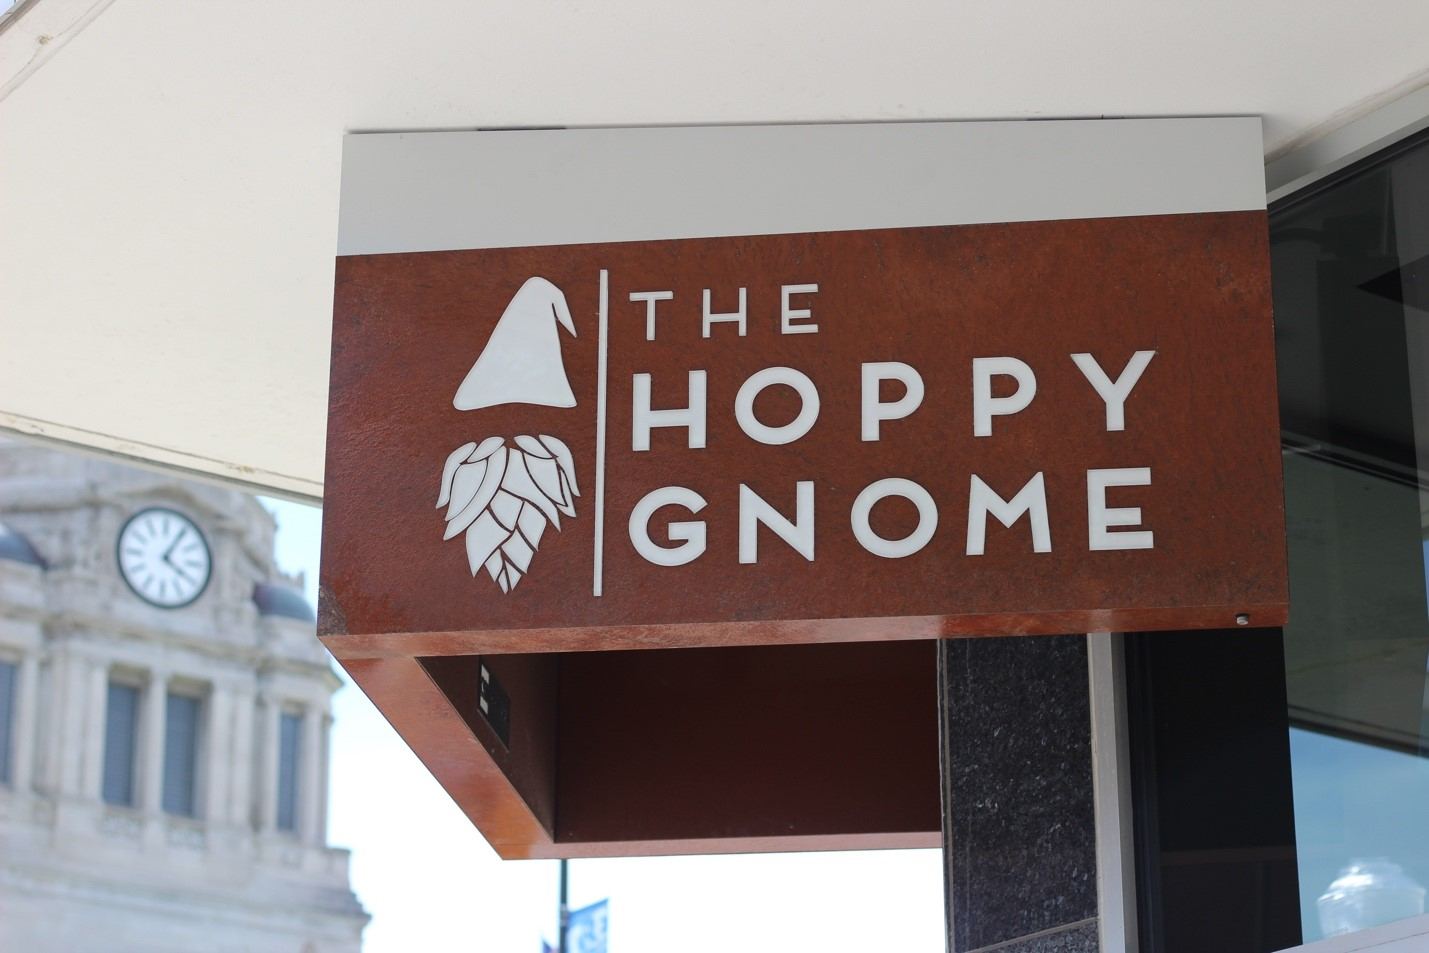 Hoppy Gnome